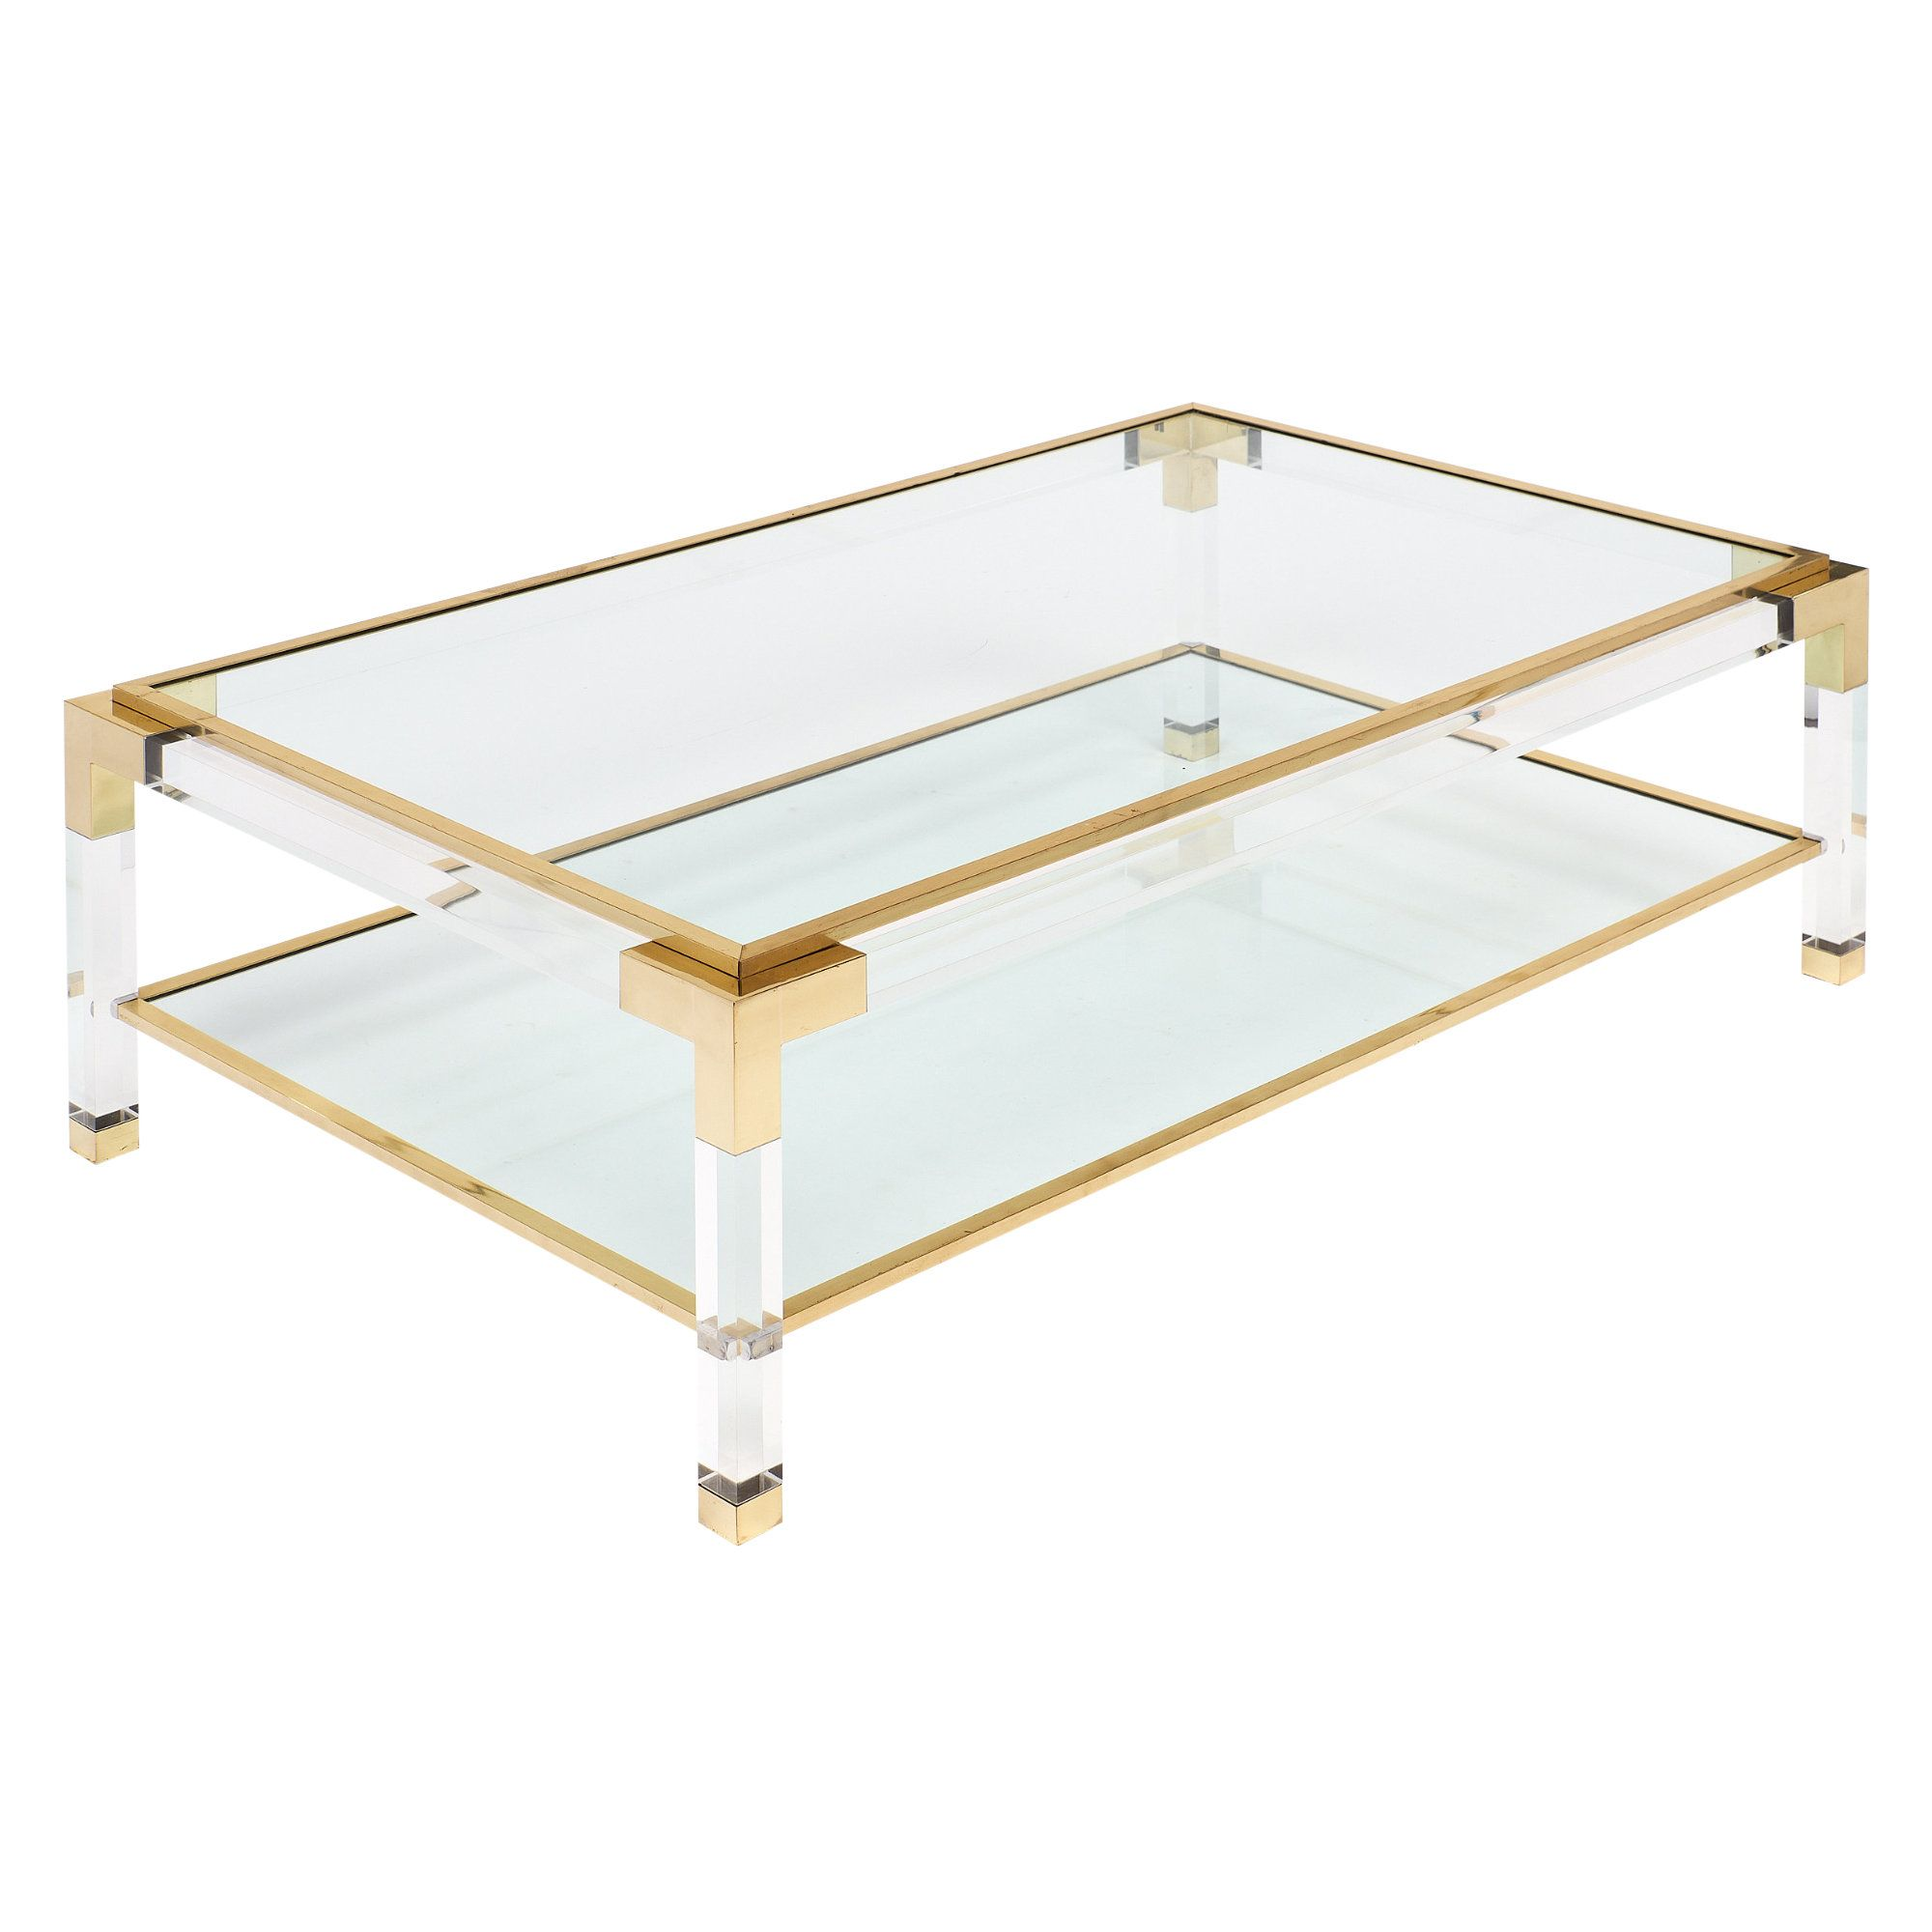 Brass And Lucite French Coffee Table - Jmf #Lucite #Vintage